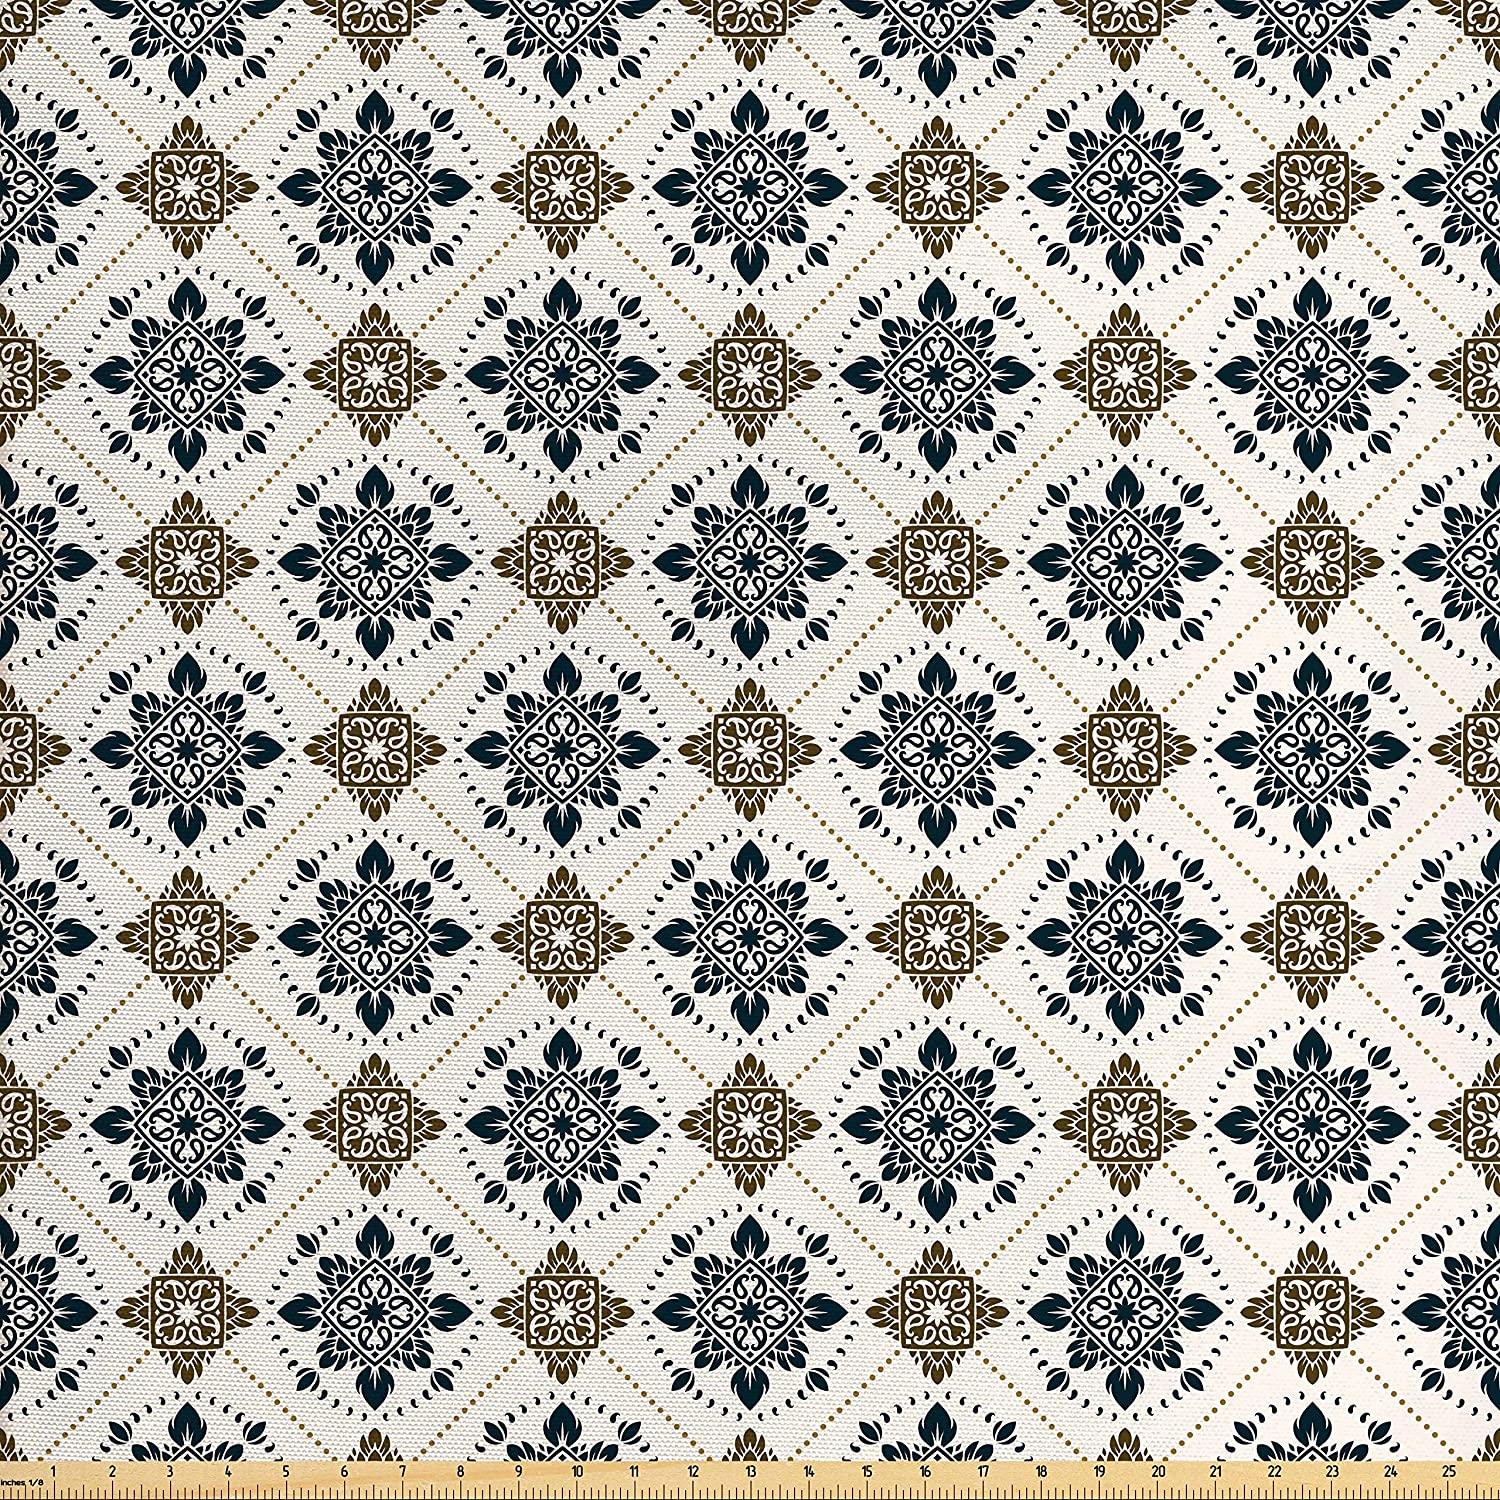 Ambesonne Persian Fabric by The Yard, Retro Boho Welsh Pears with Persian Pickles Traditional Motif Design Print, Decorative Fabric for Upholstery and Home Accents, Brown Blue